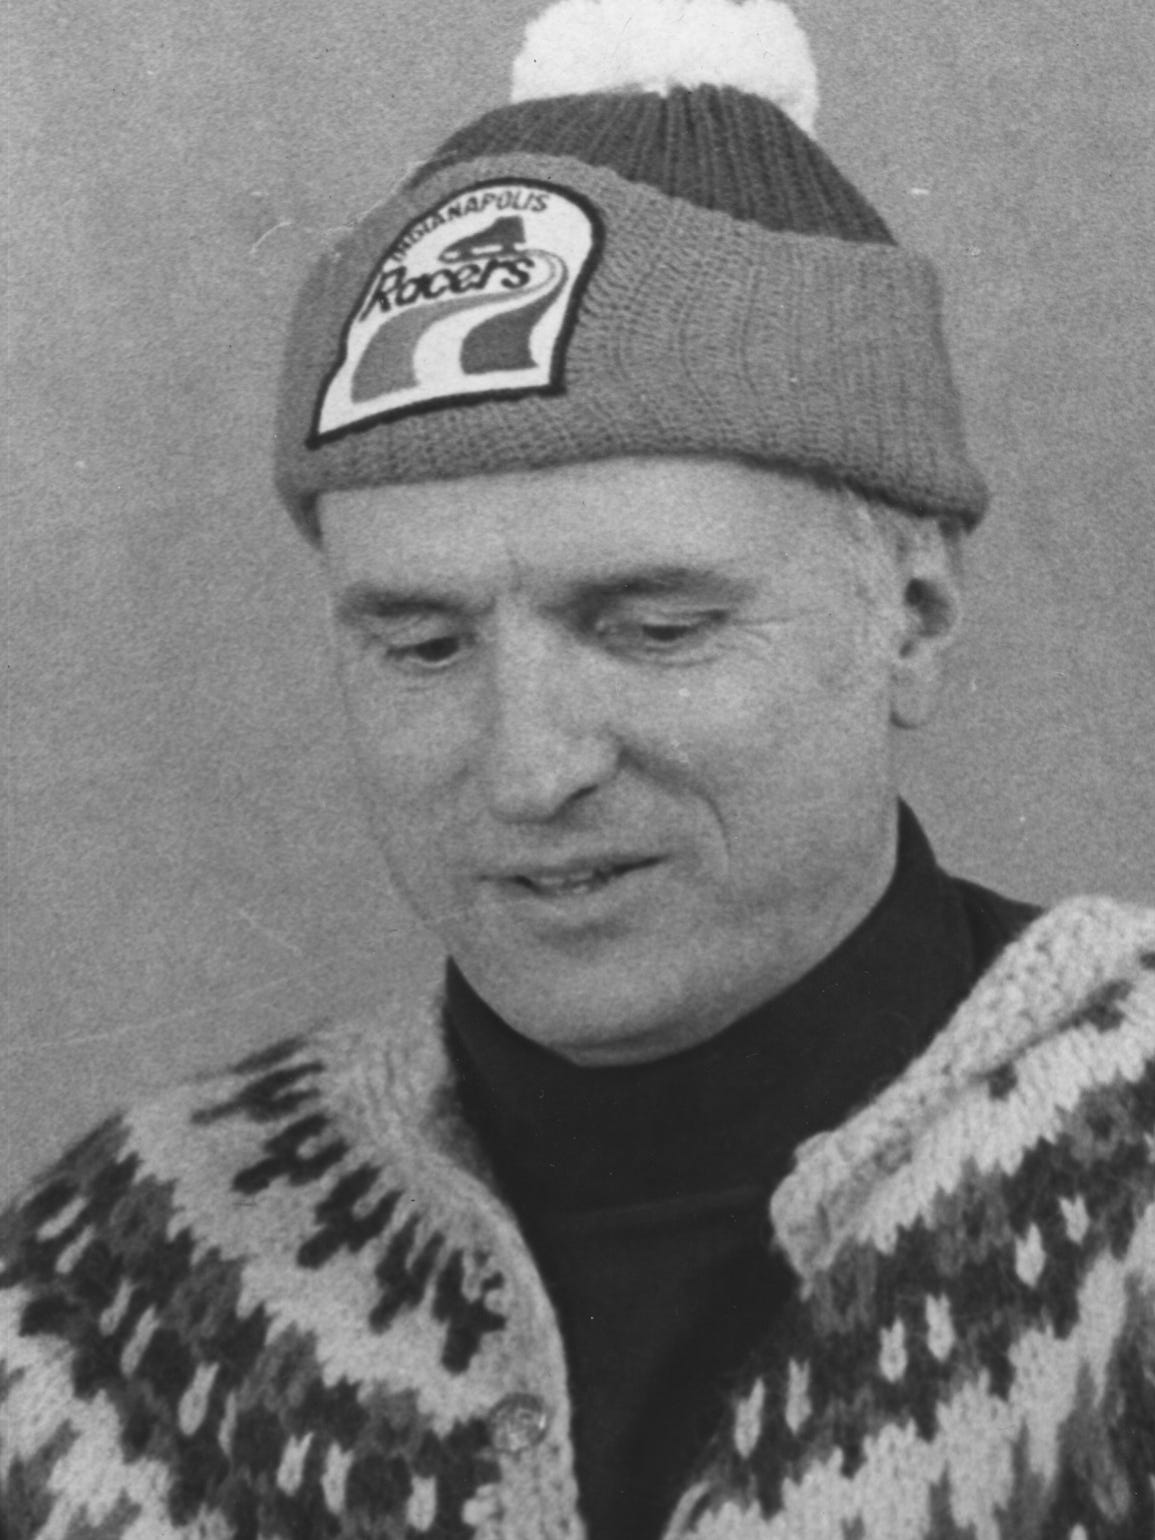 William Hudnut with his Indianapolis Racers hat (1/30/1979)